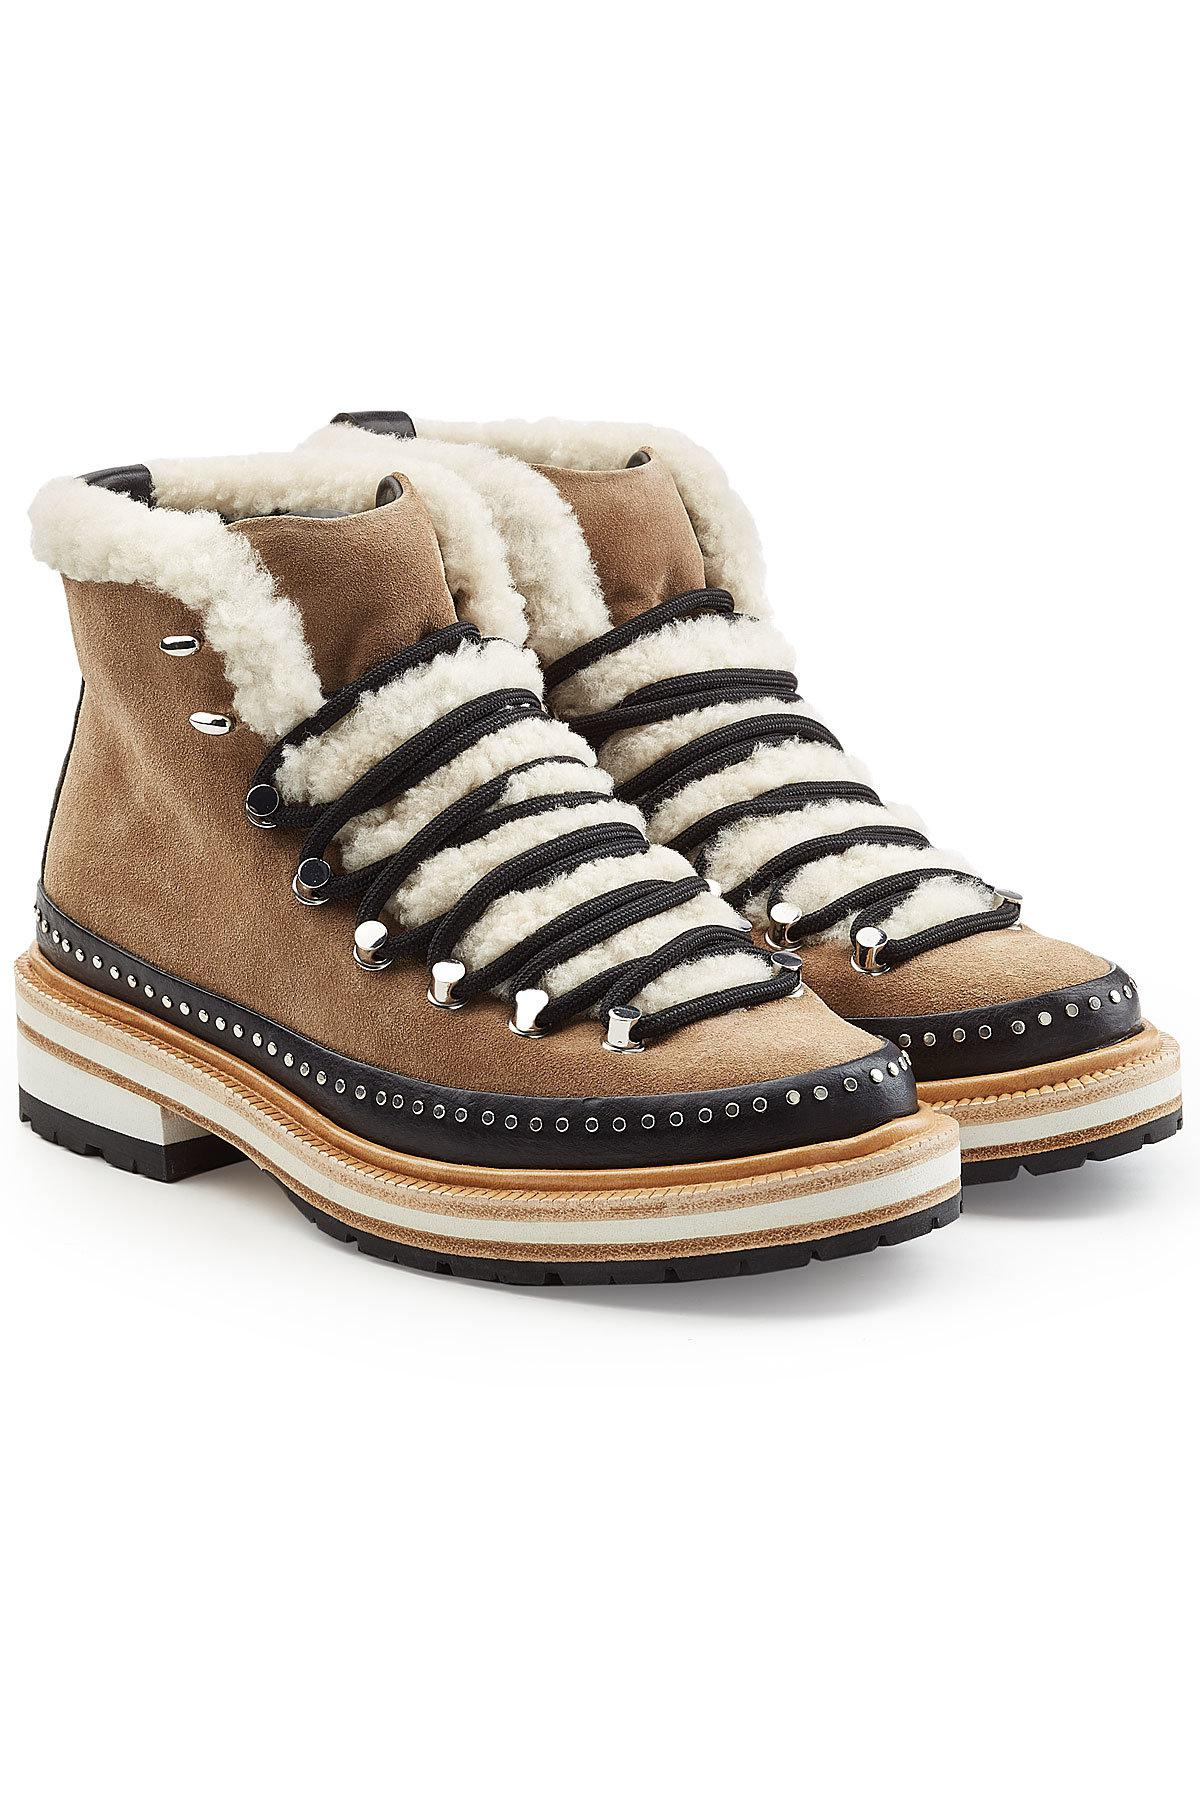 aa1accdced4 Rag & Bone Compass Ankle Boots With Suede, Shearling And Leather - Lyst